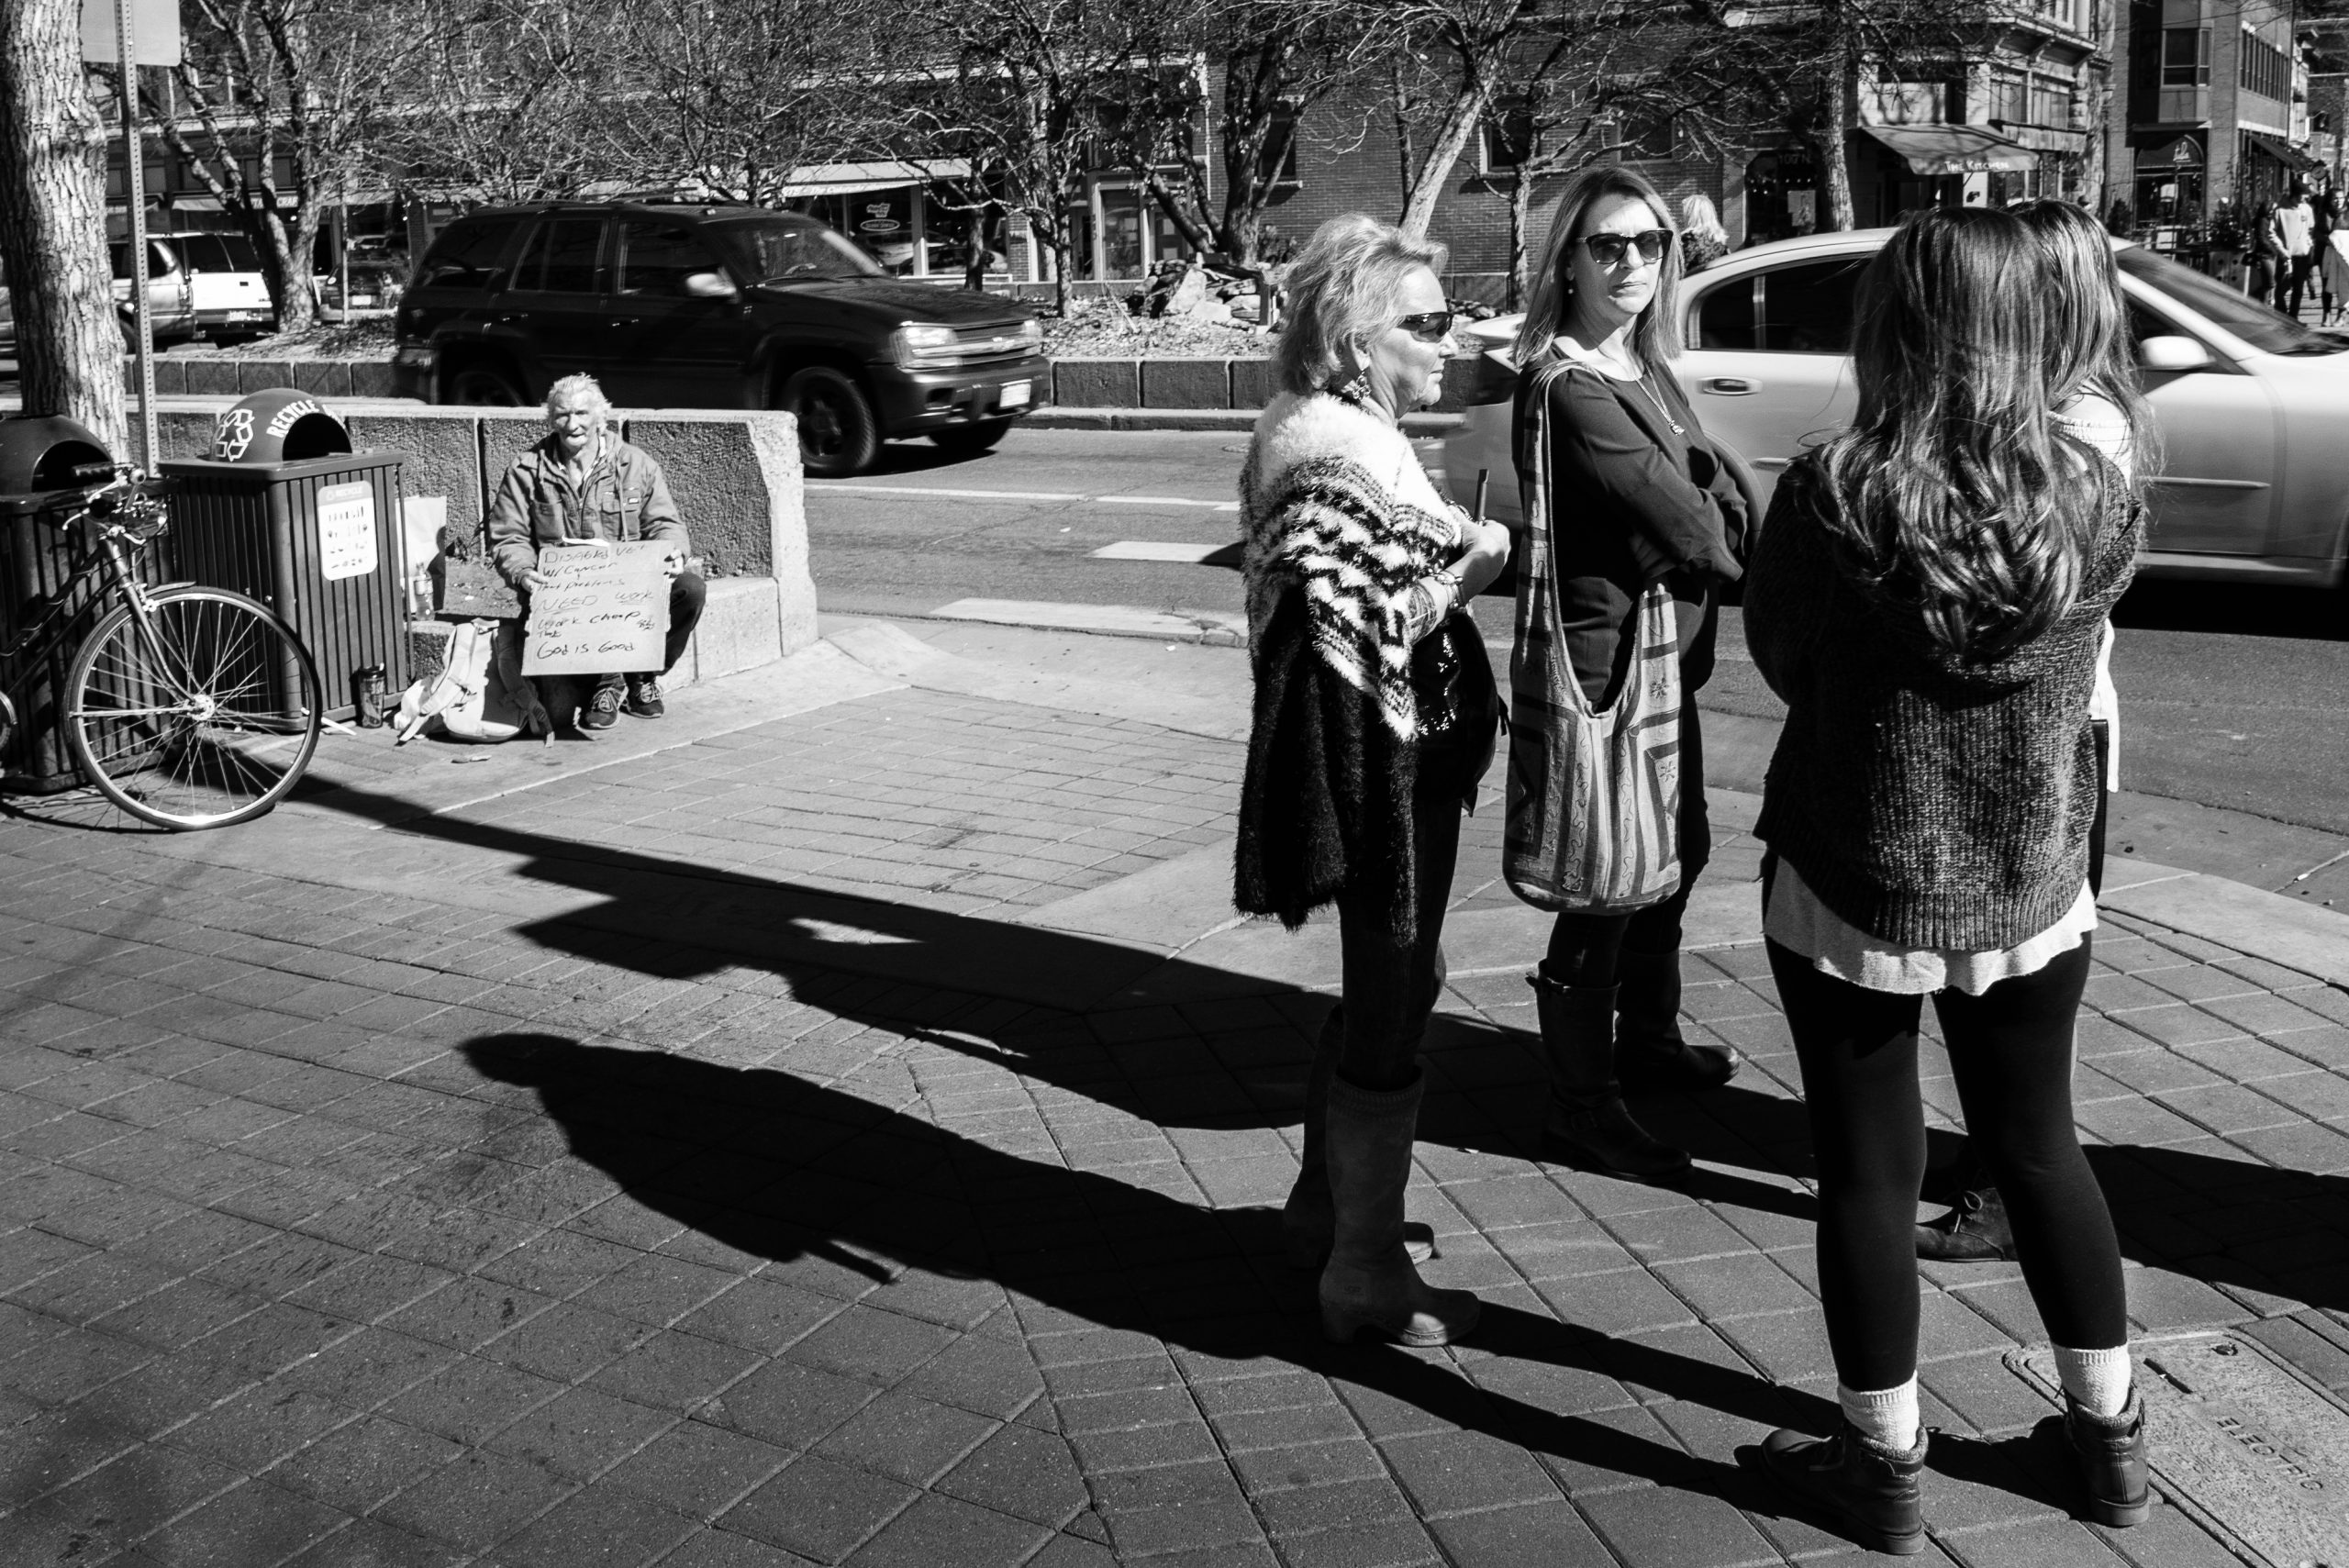 Disabled Veteran with jaw Cancer and heart problems is ignored by four women at the corner of Mountain Ave and College Ave in Fort Collins, CO. Spring 2018